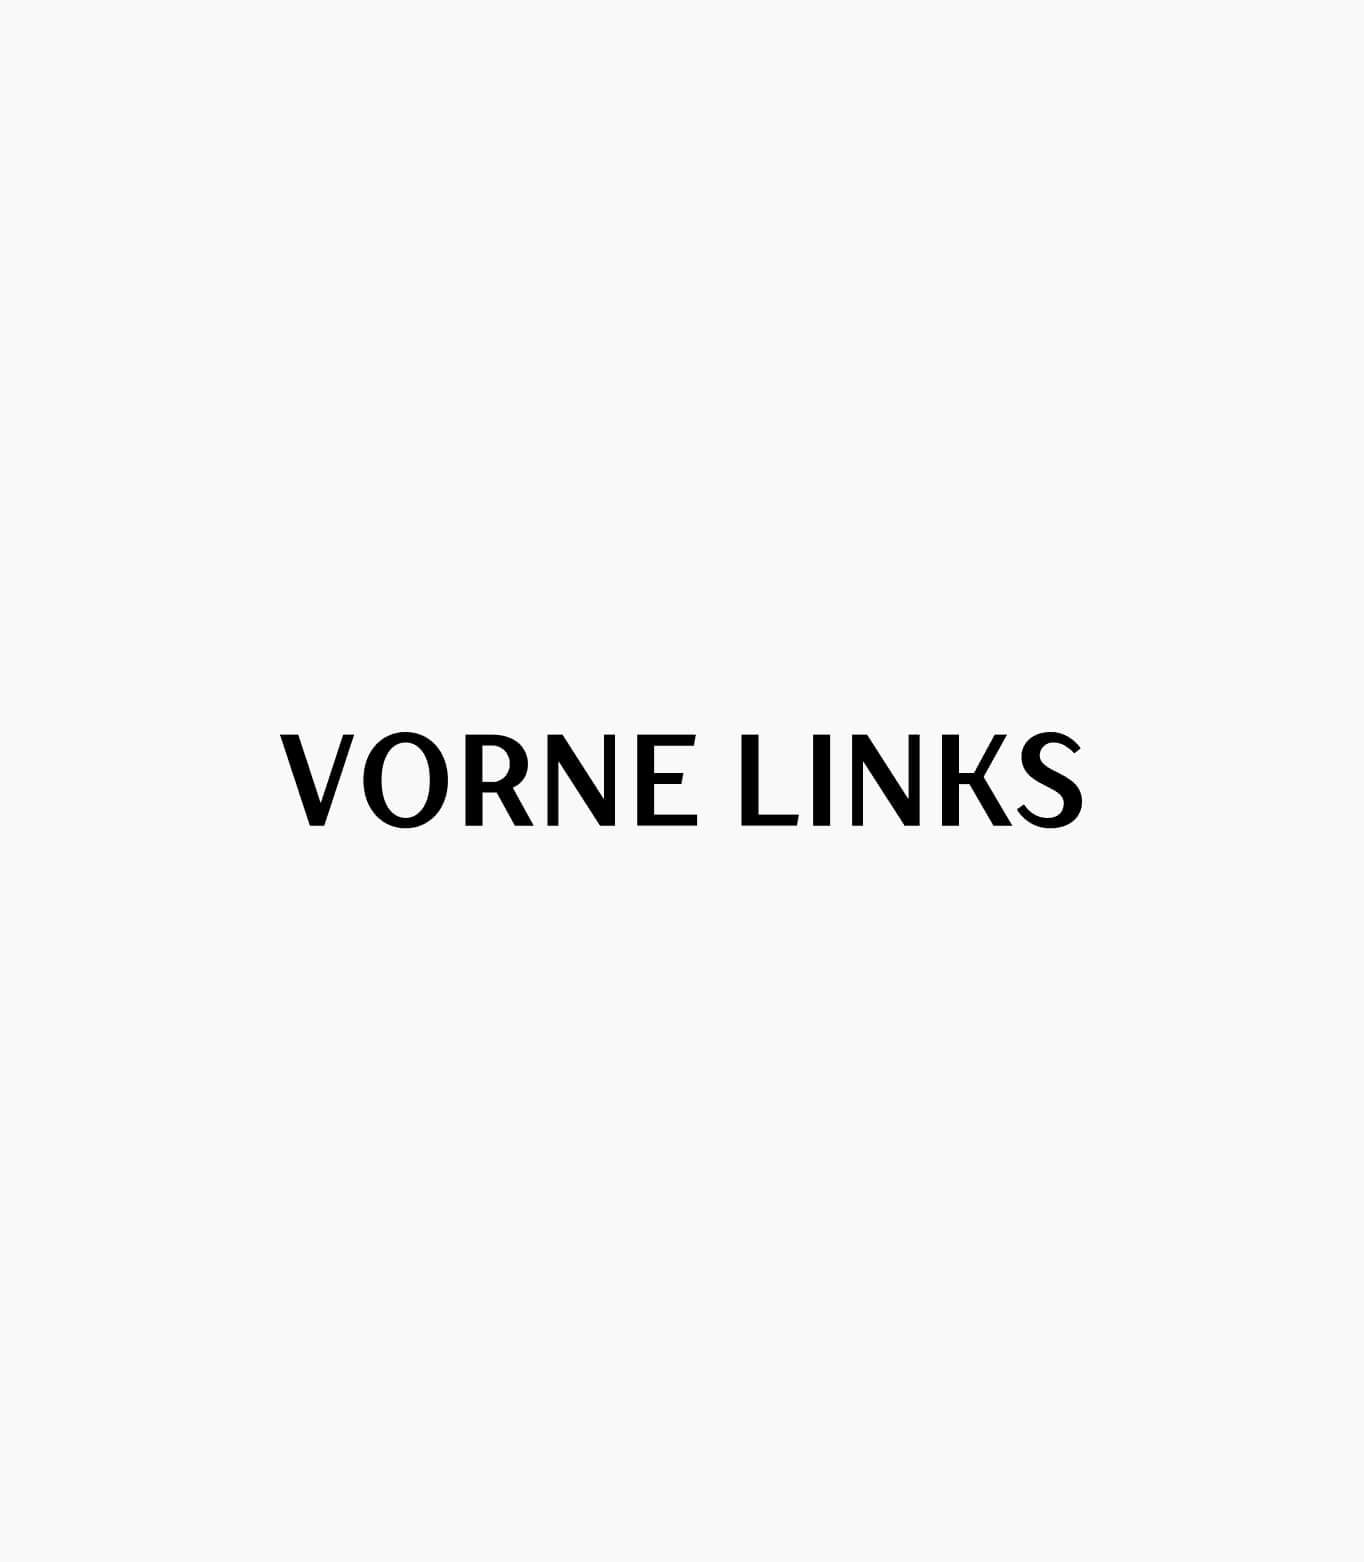 Original Vorne Links